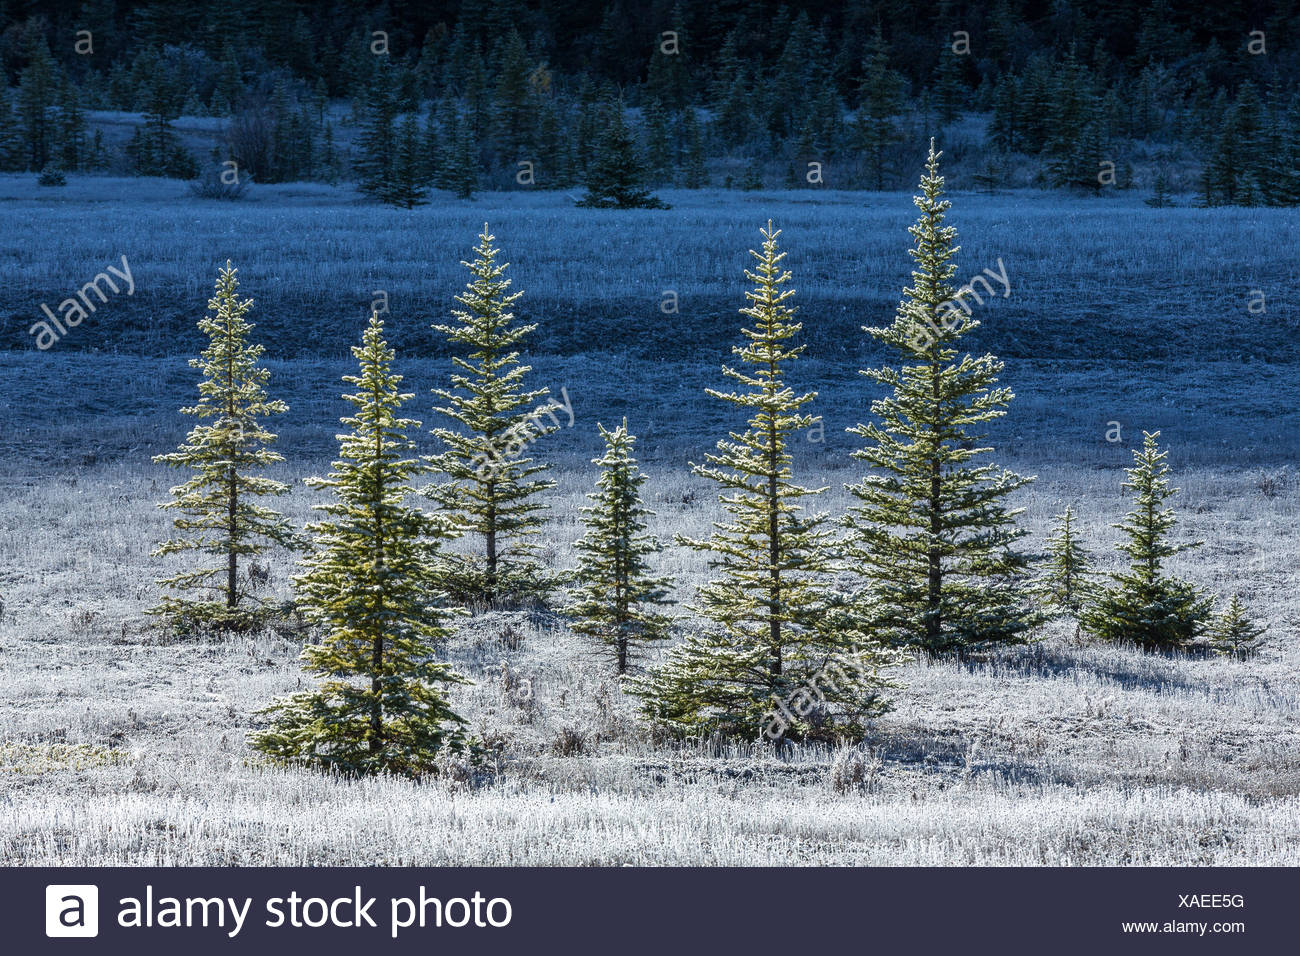 Morning frost, Sunwapta River Flats, Jasper National Park, Alberta, Canada - Stock Image